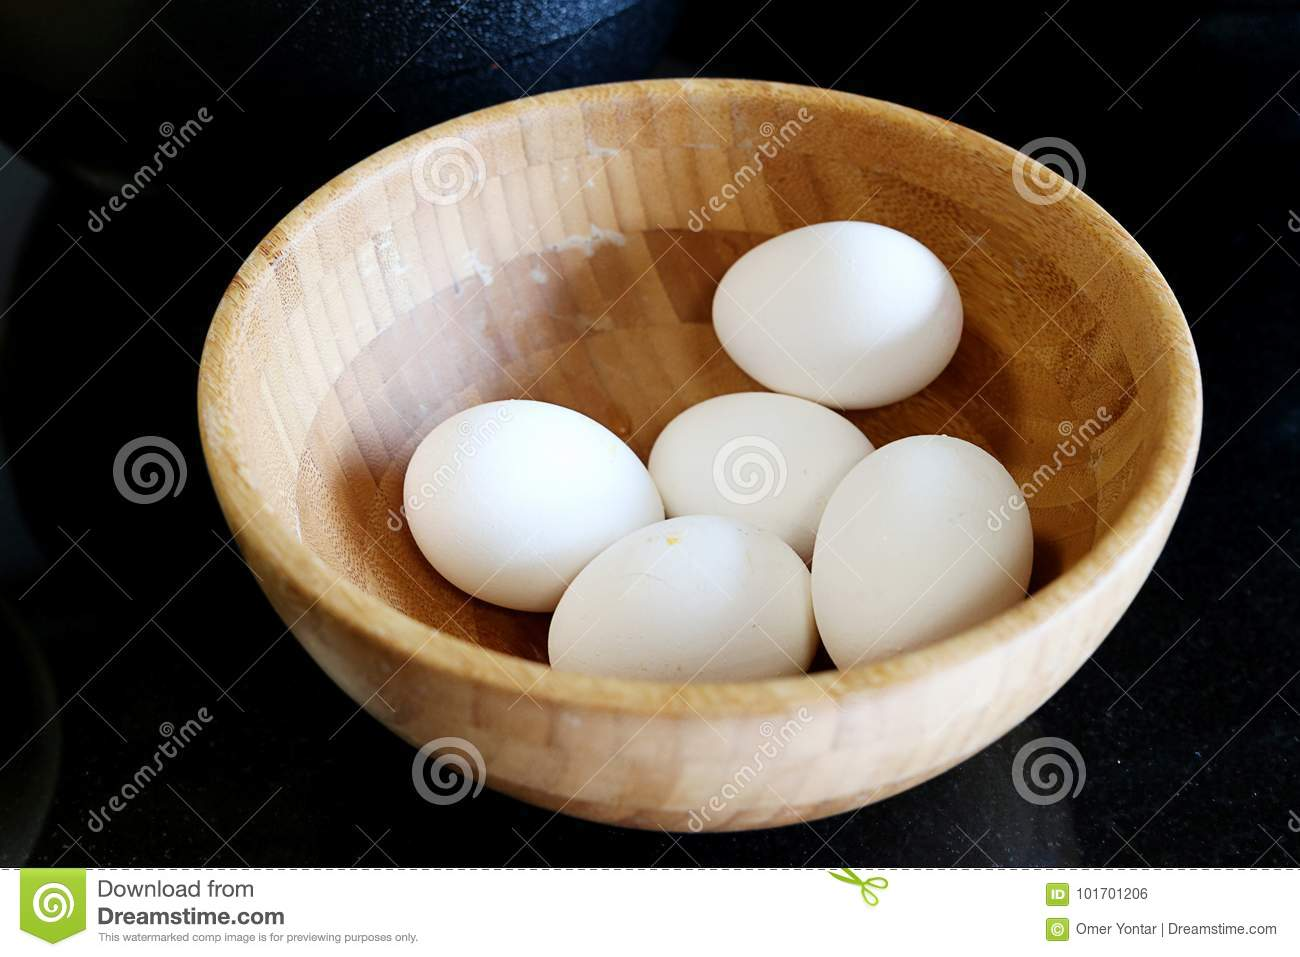 Eggs in the wooden plate